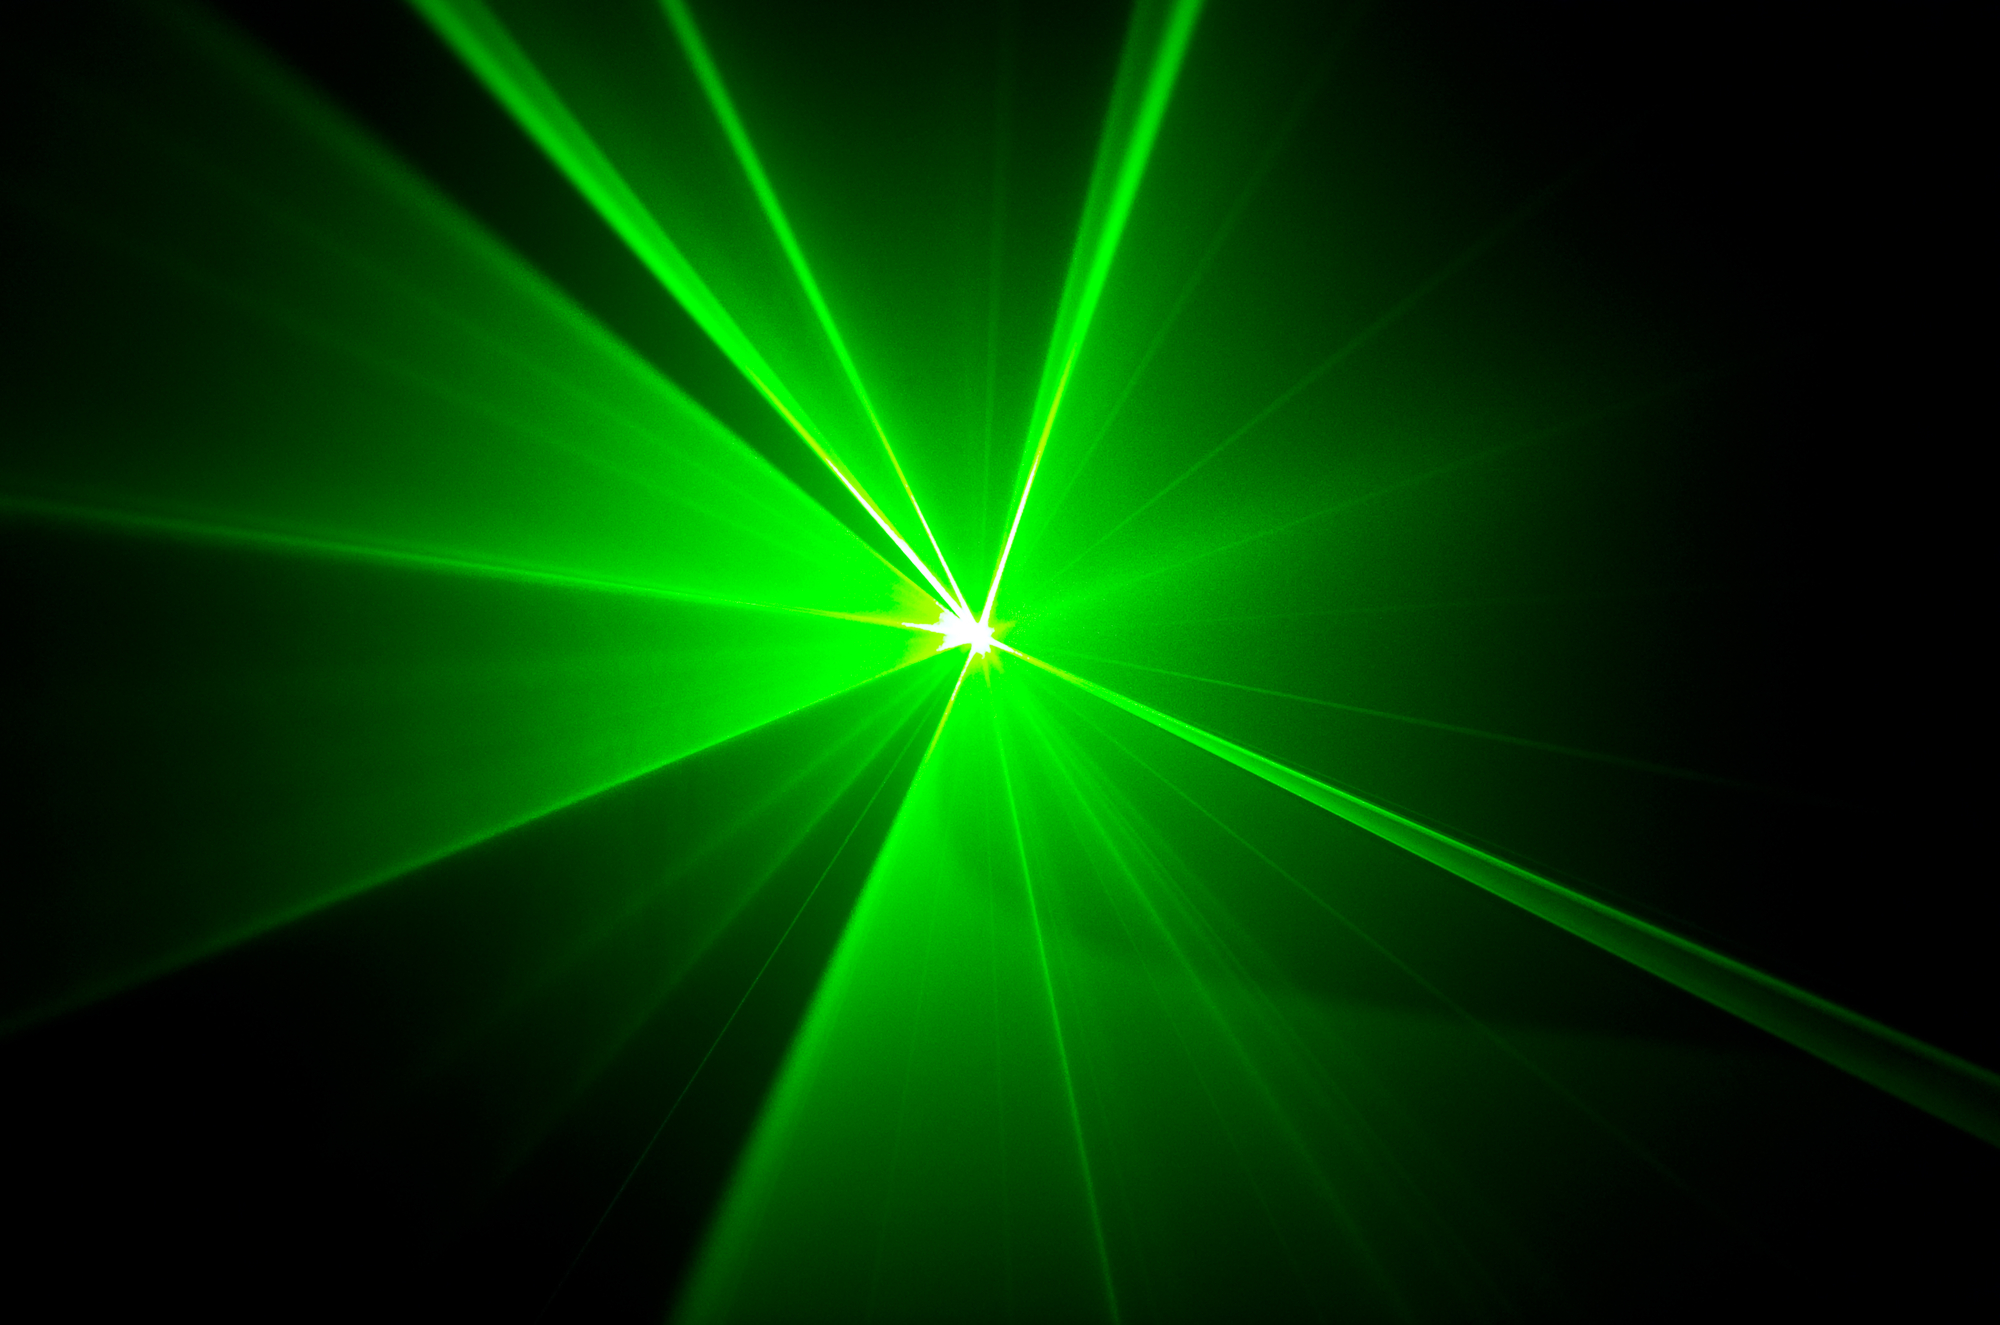 Using ultrafast laser pulses, a new camera system can shoot at up to 70 trillion frames per second